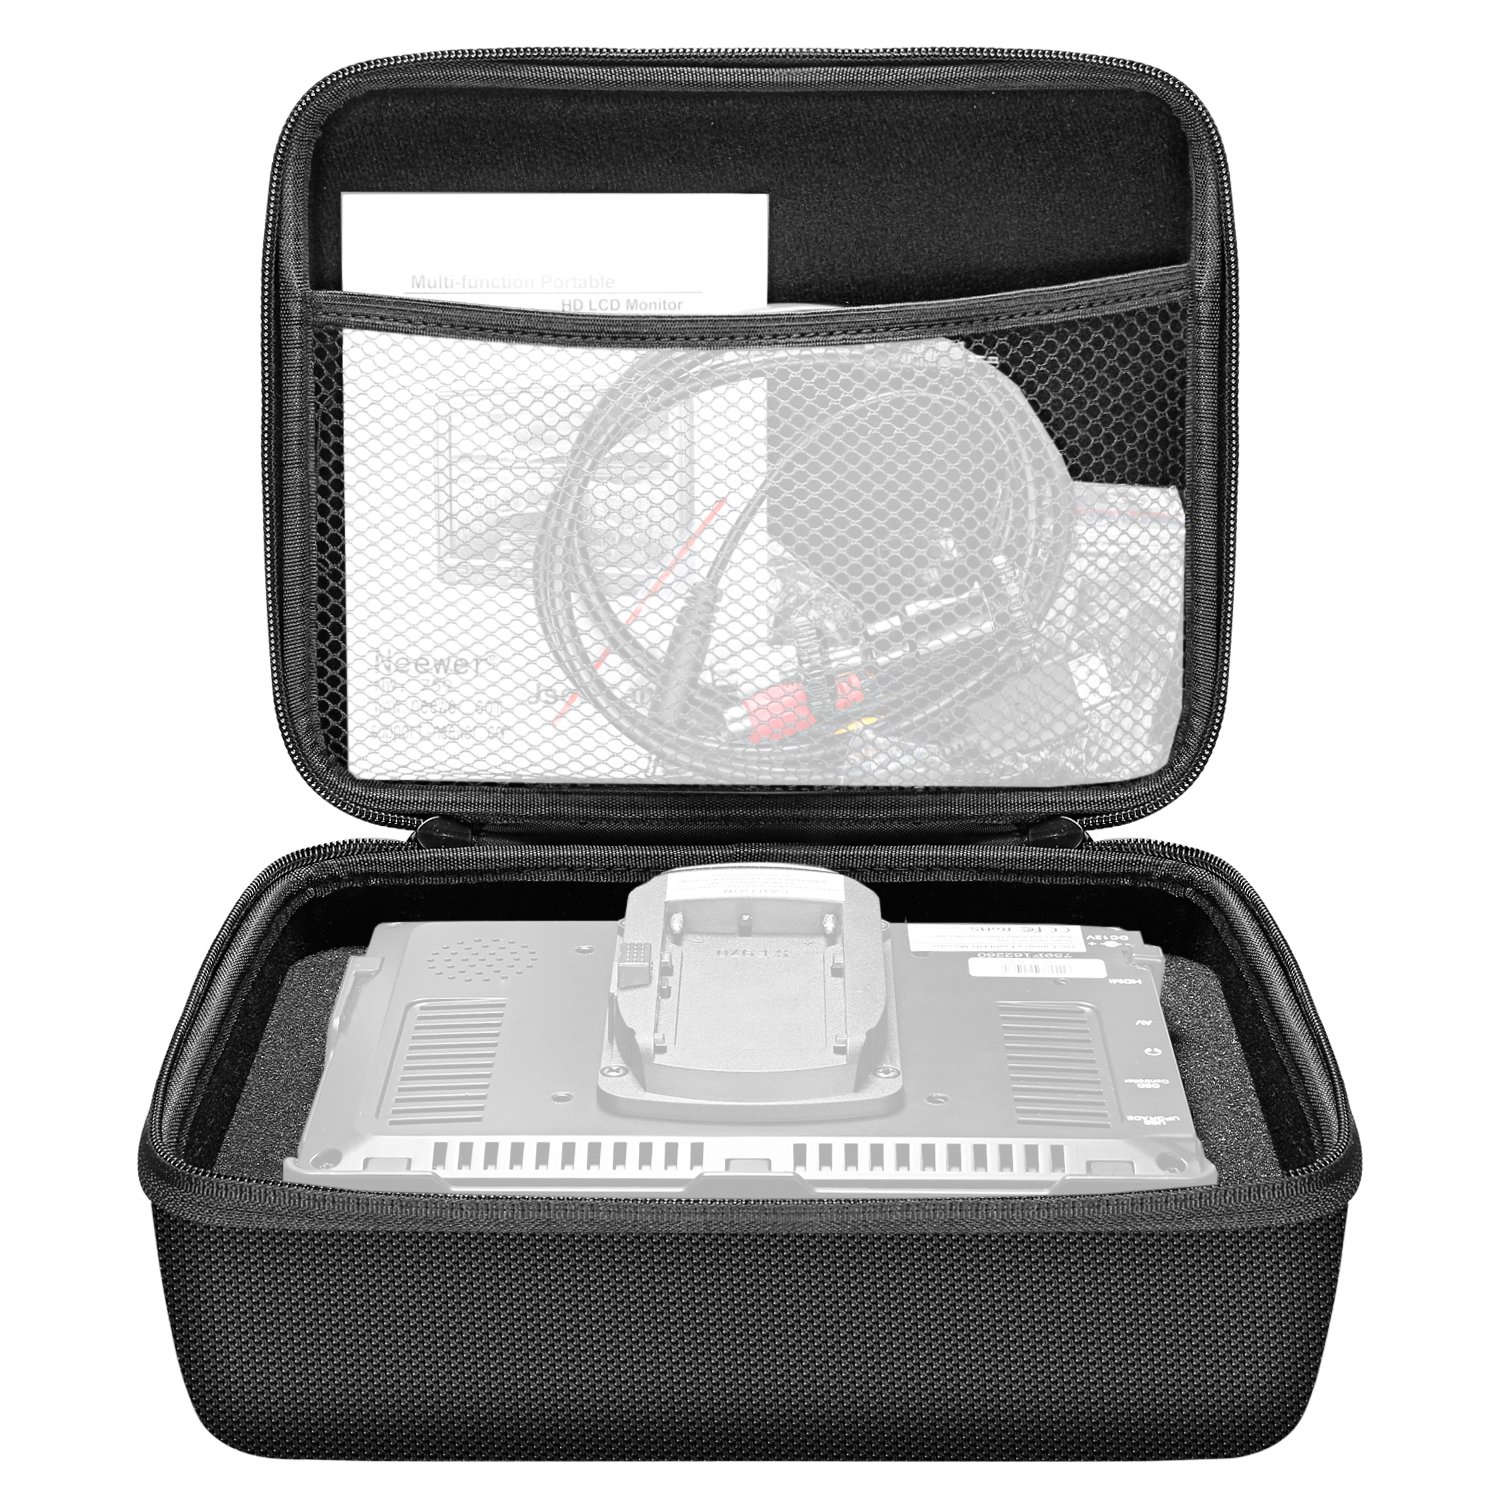 Neewer Portable EVA Monitor Carrying Case for NW759 NW760 NW74k Feelworld FW759 FW760 F7 FW759P FW74K A737 FH7 Lilliput A7S Aputure VS-1 VS-2 FineHD and other 7 Inch DSLR Video Monitors by Neewer